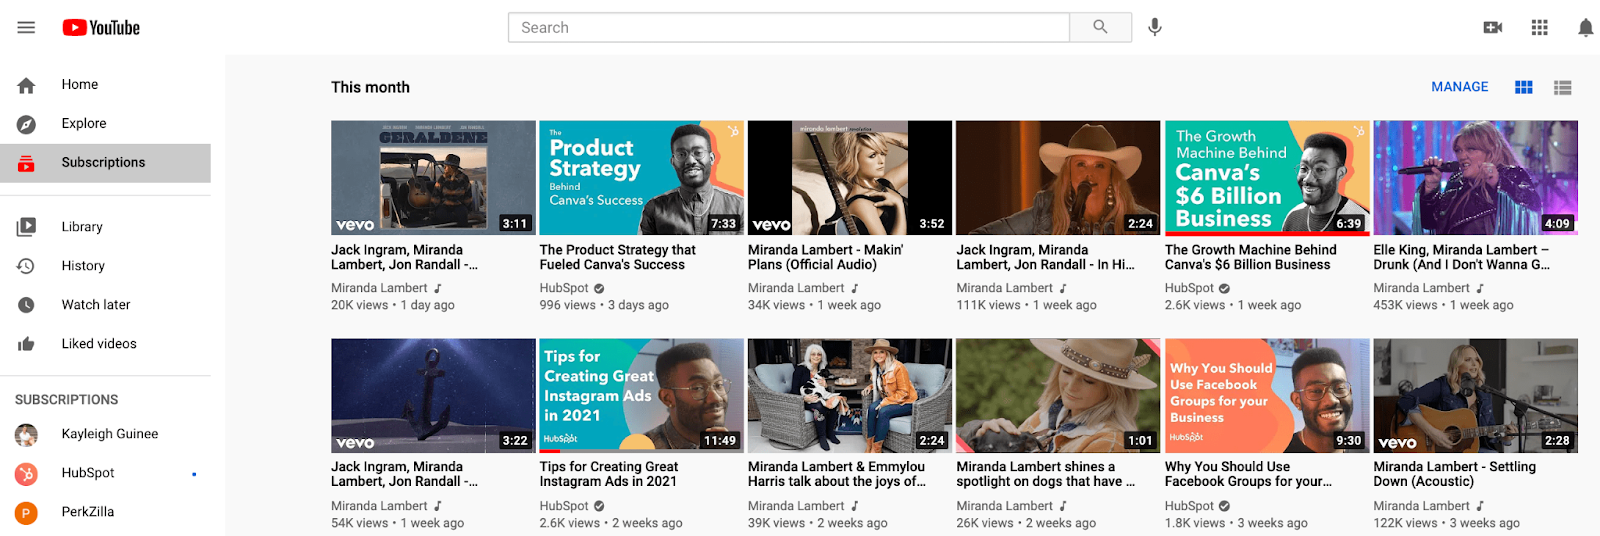 YouTube's Subscription Feed, which is one browse feature